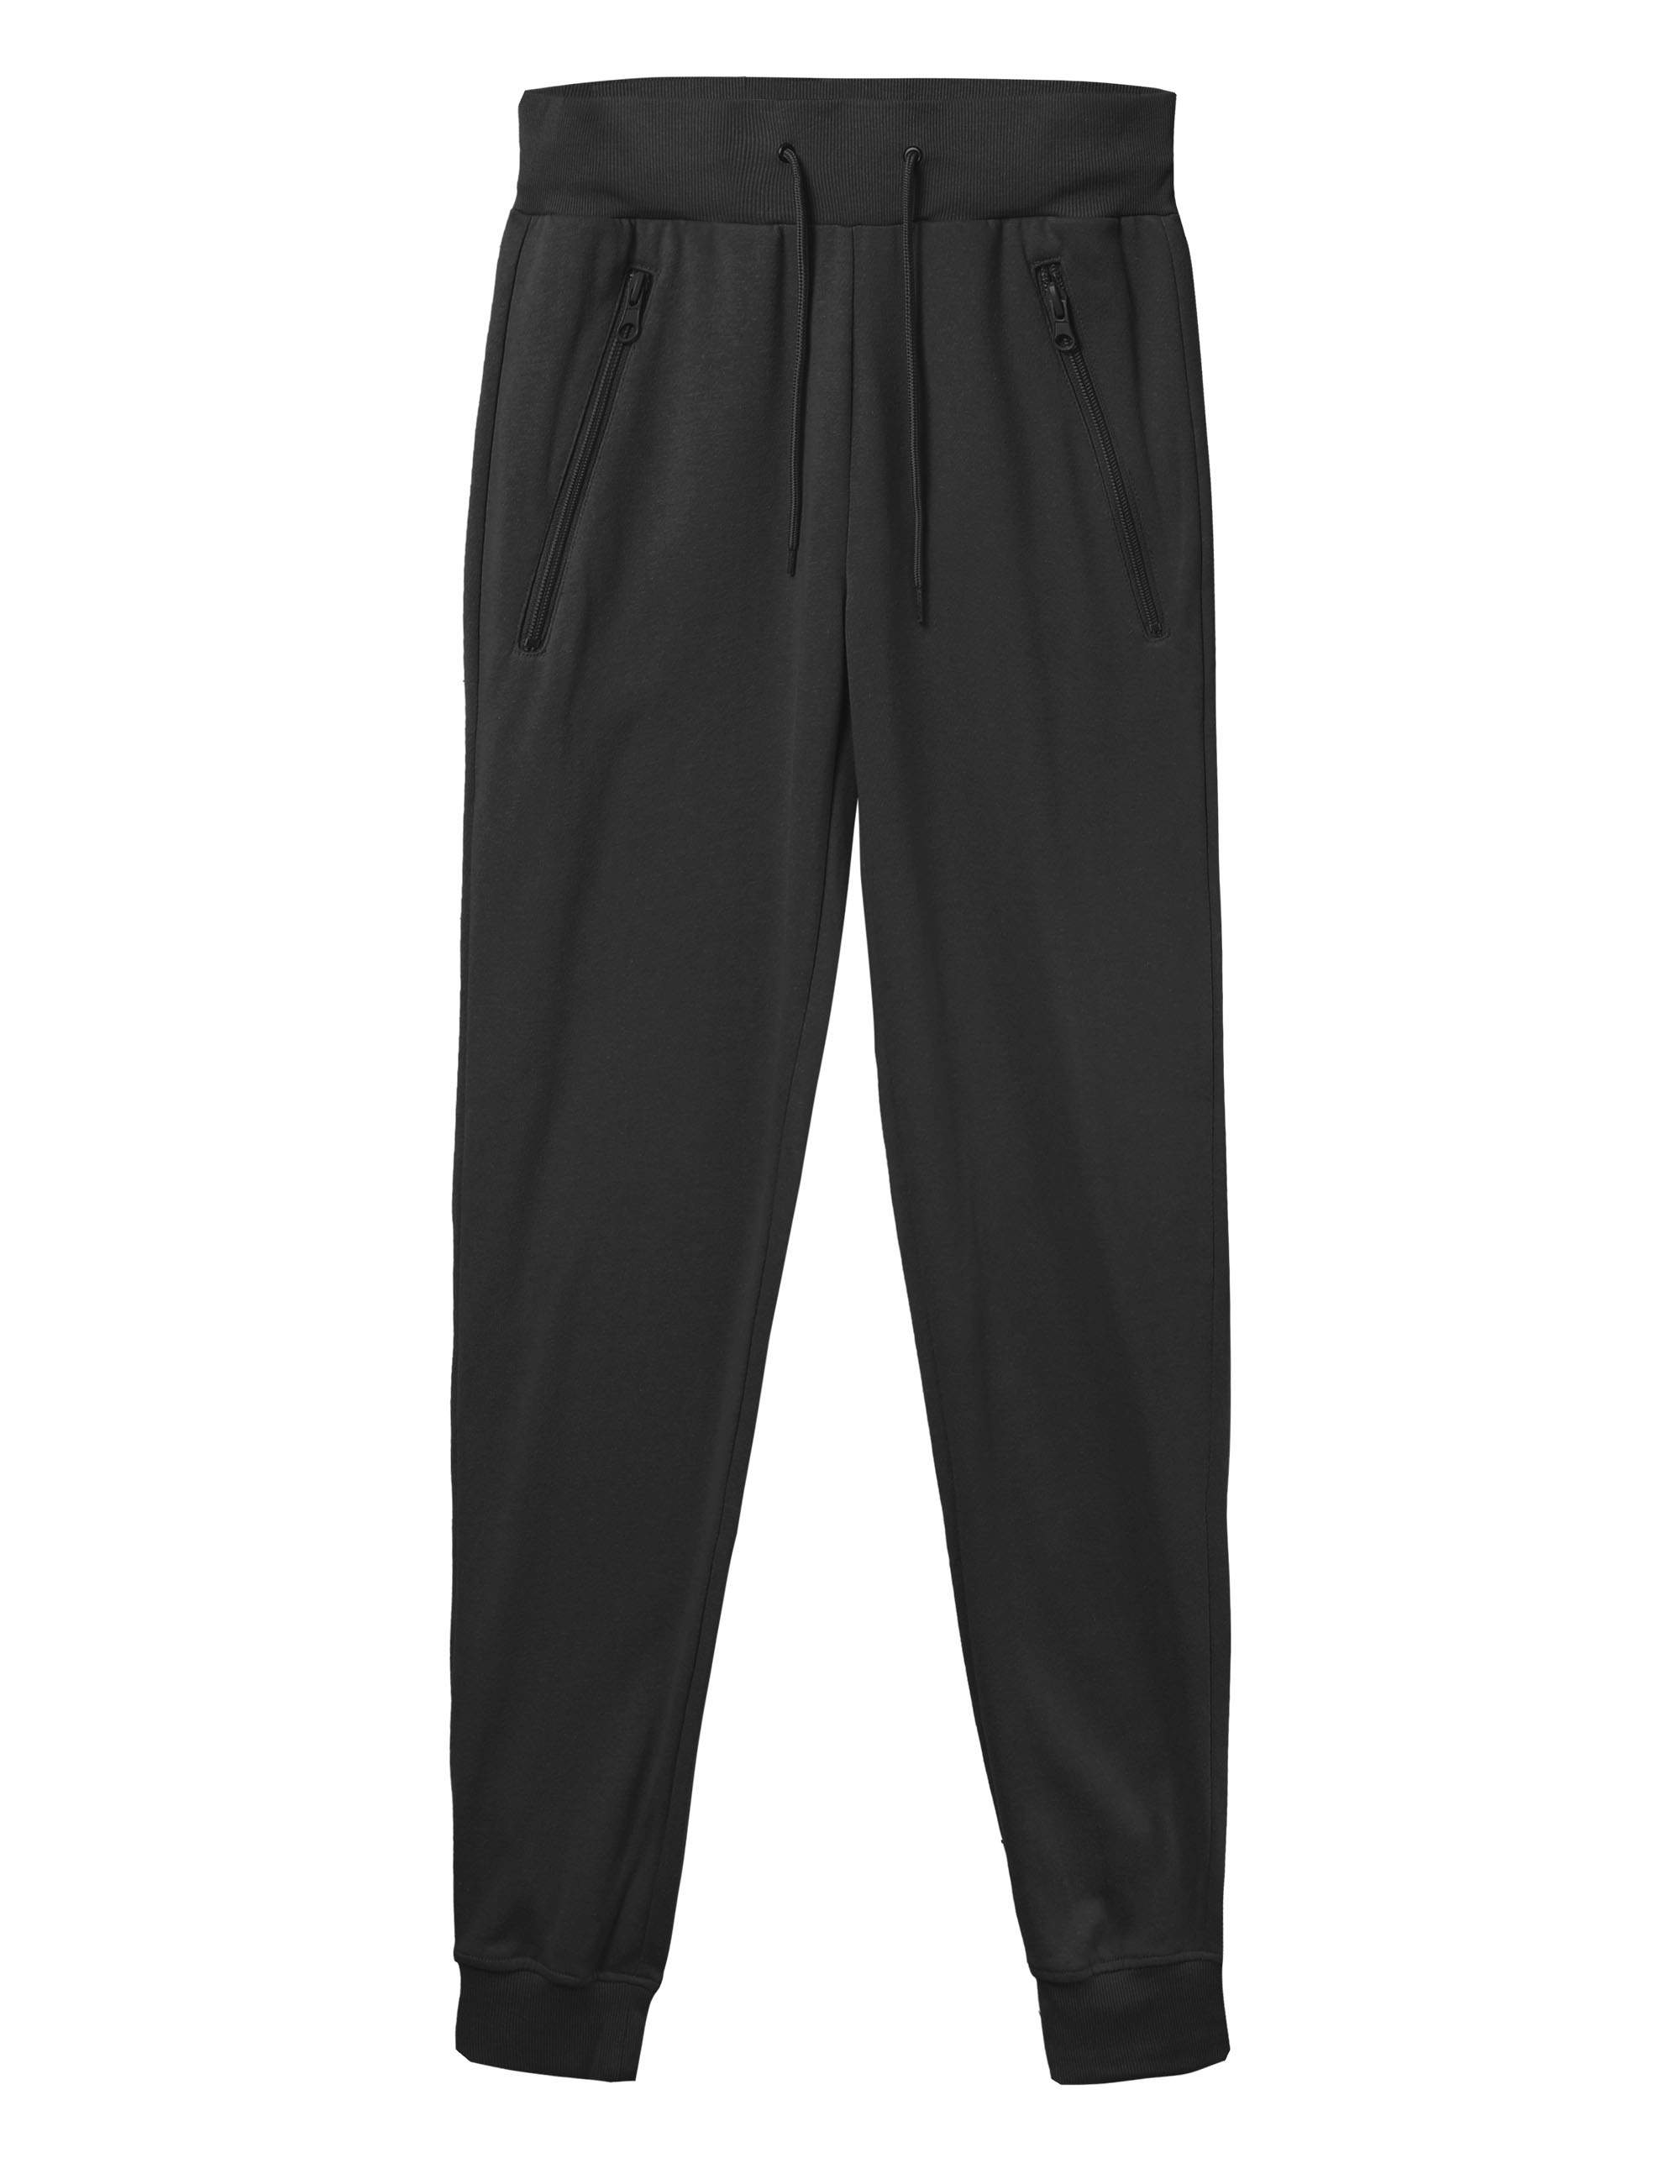 Mens Joggers Lighweight French Terry Pants with Zipper Pocket Jogger